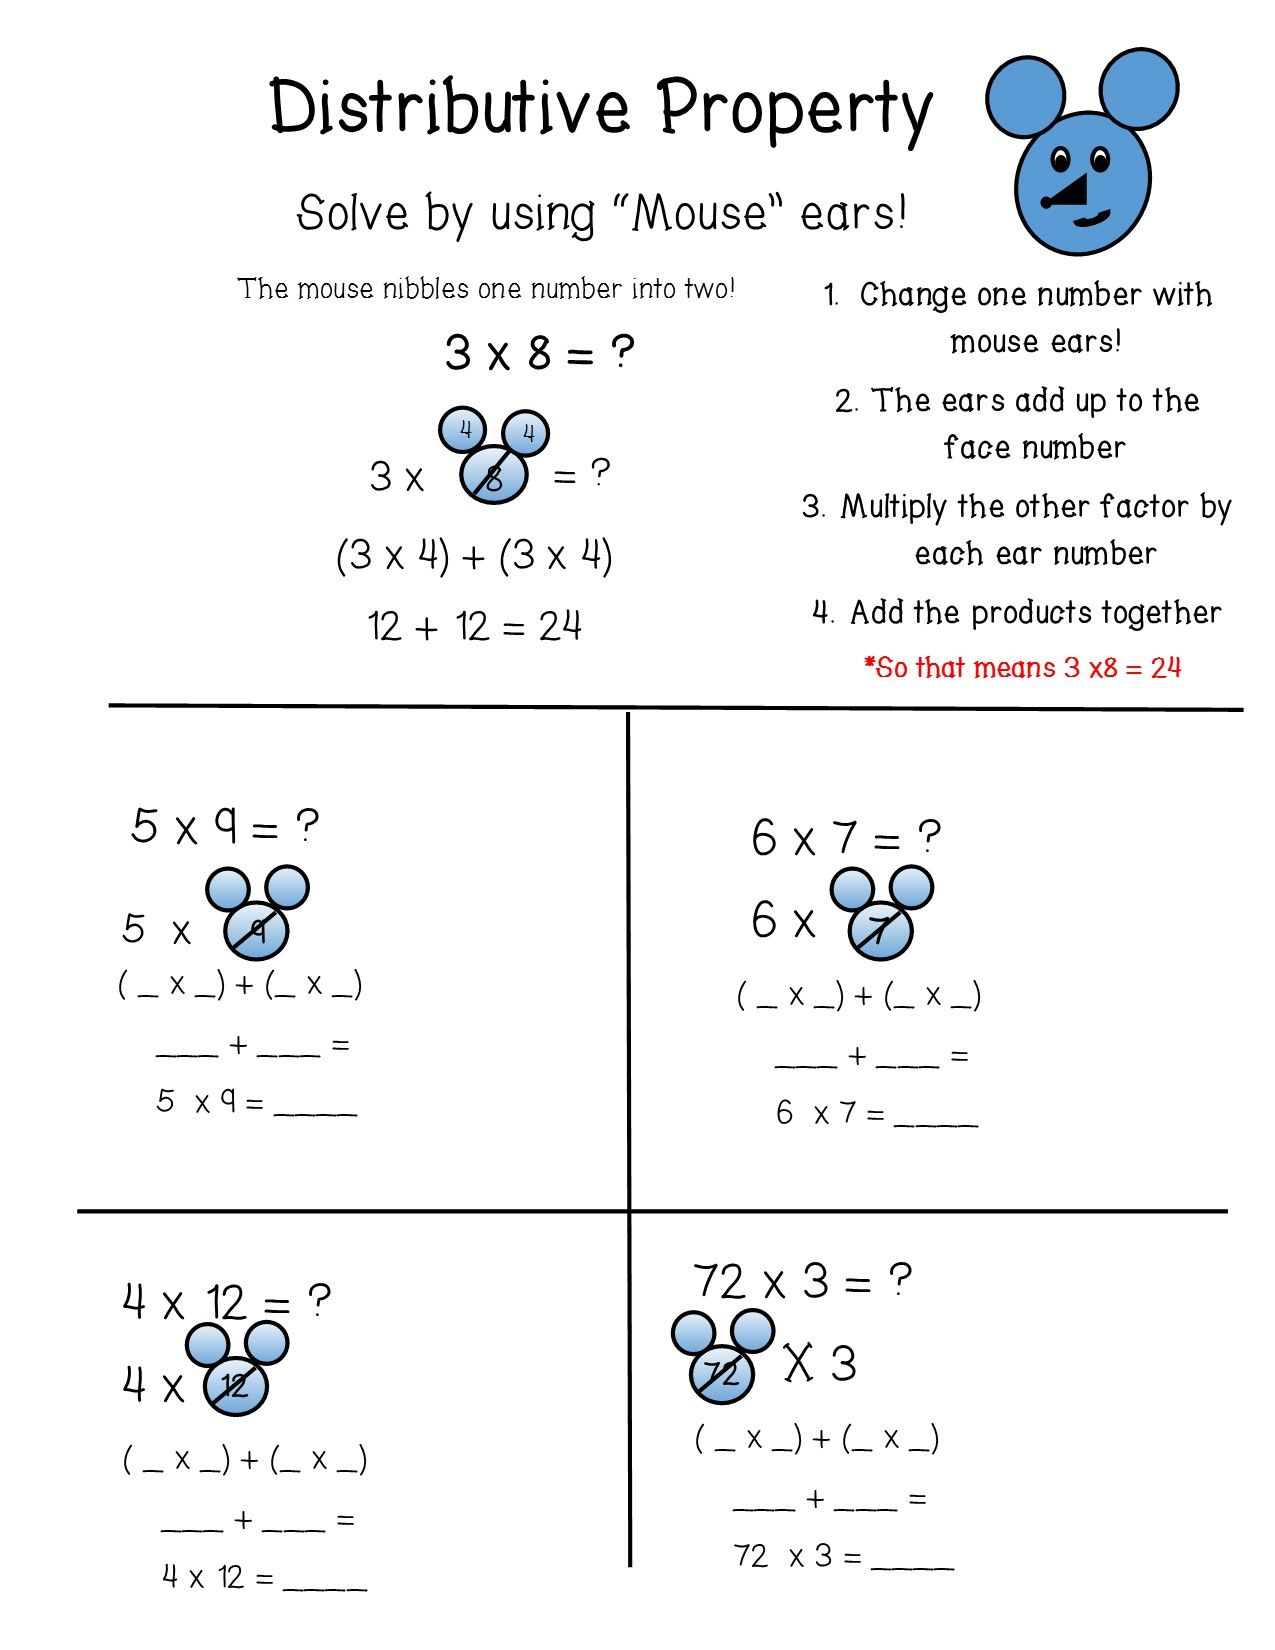 The Distributive Property of Multiplication is broken down